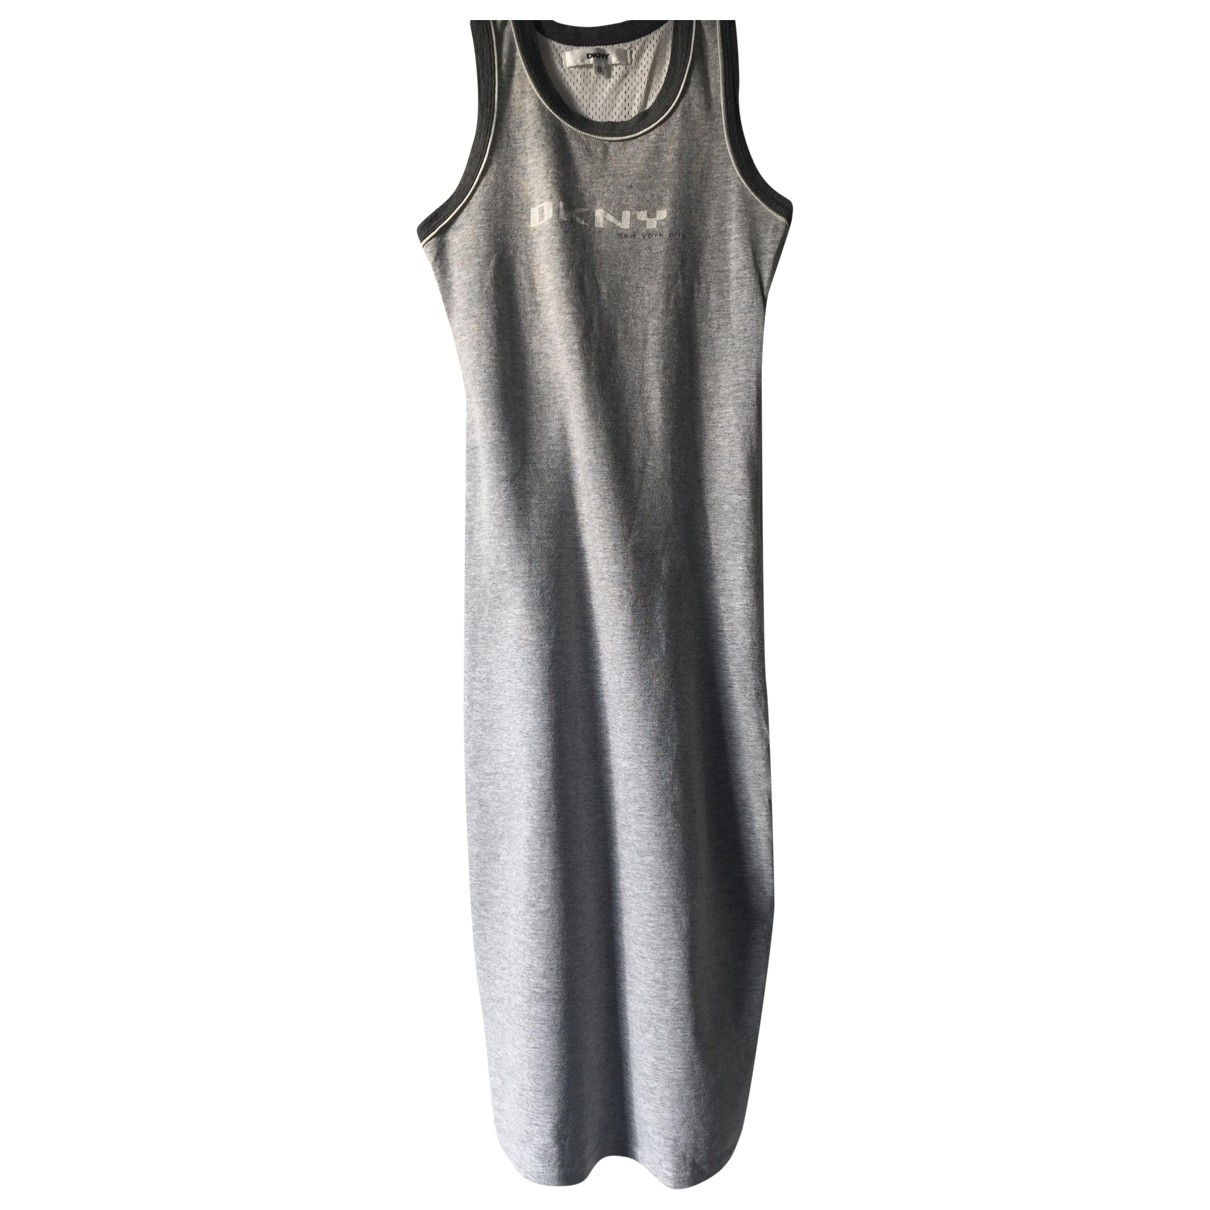 Dkny \N Grey Cotton - elasthane dress for Kids 8 years - until 50 inches UK